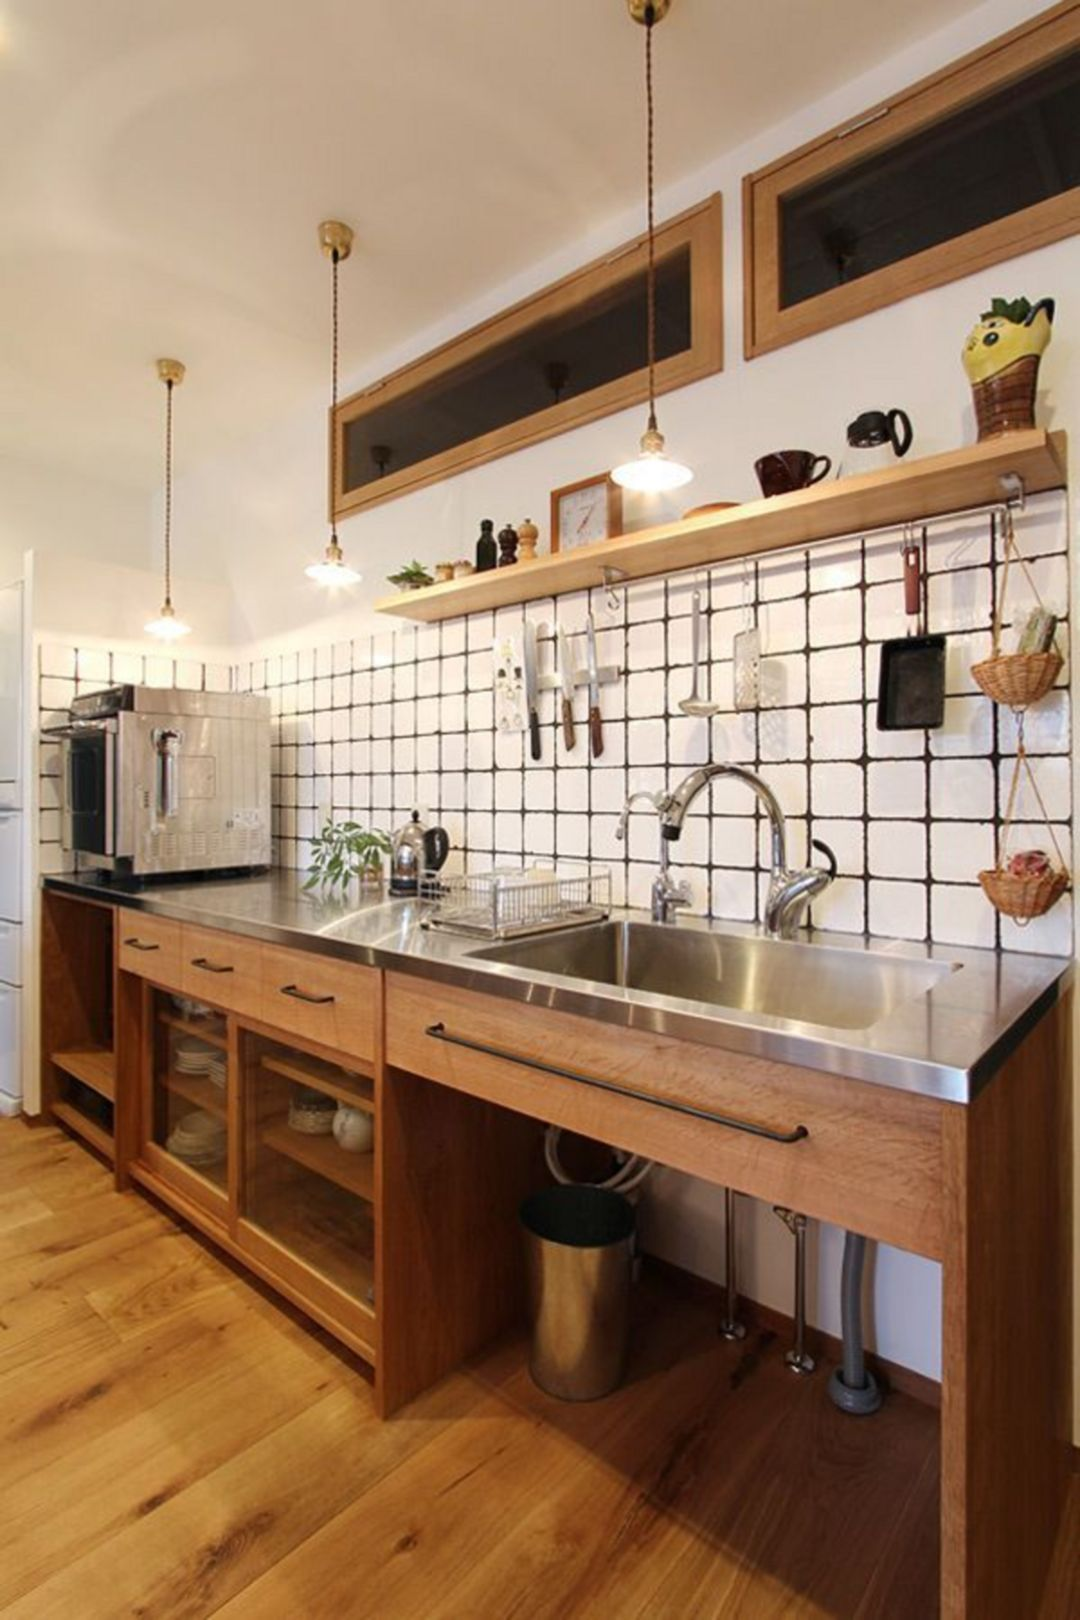 12 extraordinary japanese kitchen designs you must have with images restaurant kitchen on kitchen interior japan id=83671